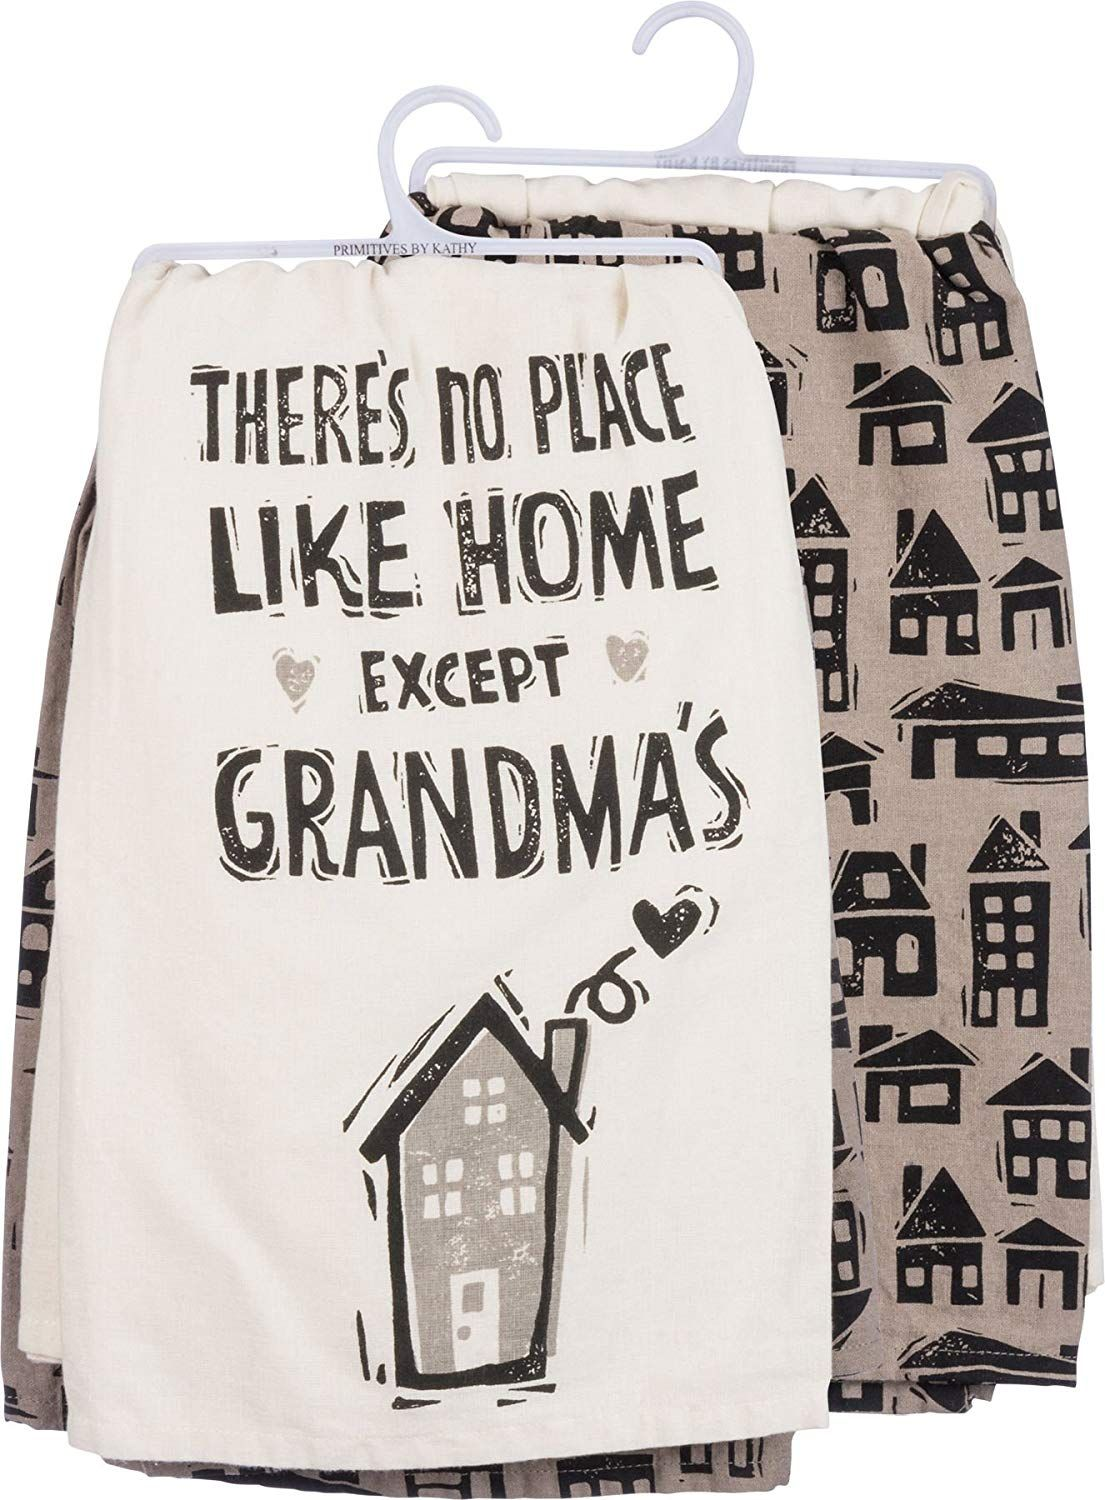 20 Best Christmas Gifts for Grandma - Good Present Ideas for ...